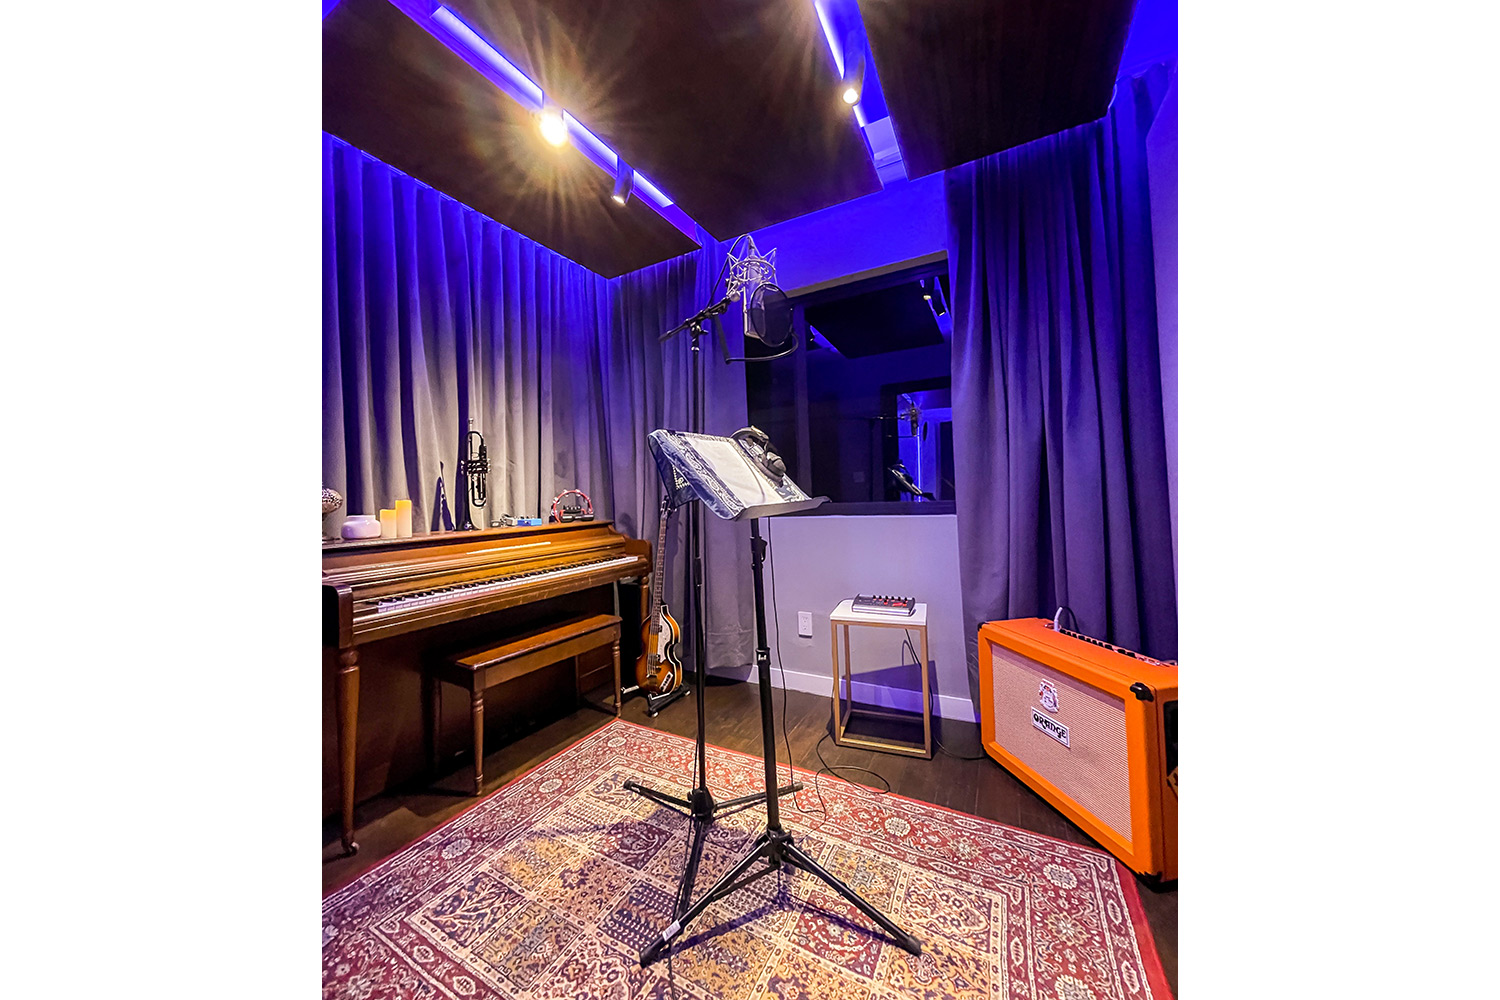 Groovyland Studios Live Room. E-Studio designed by WSDG and owned by David Molho.